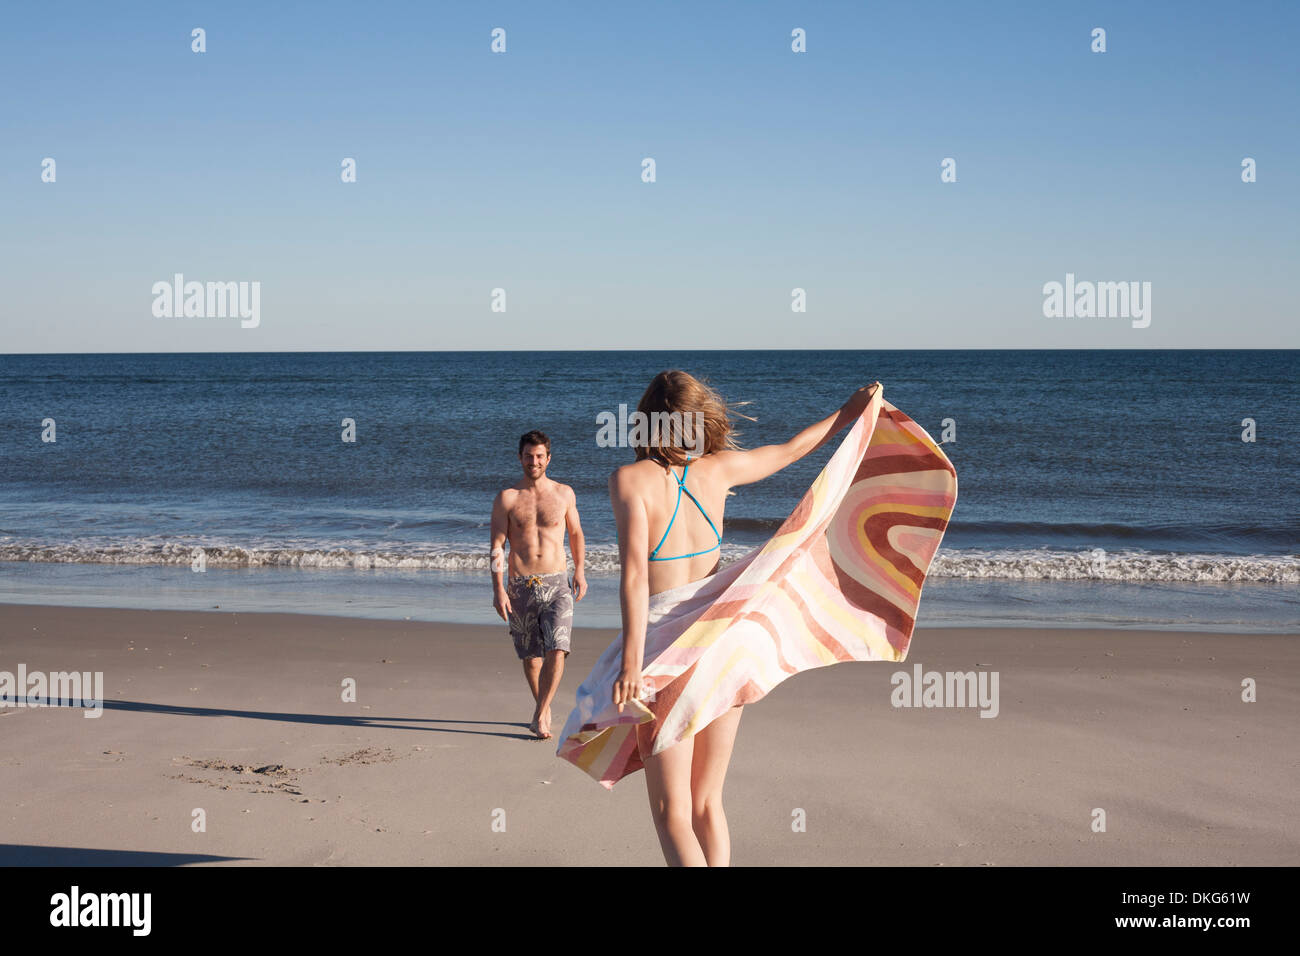 Couple on beach, Breezy Point, Queens, New York, USA - Stock Image